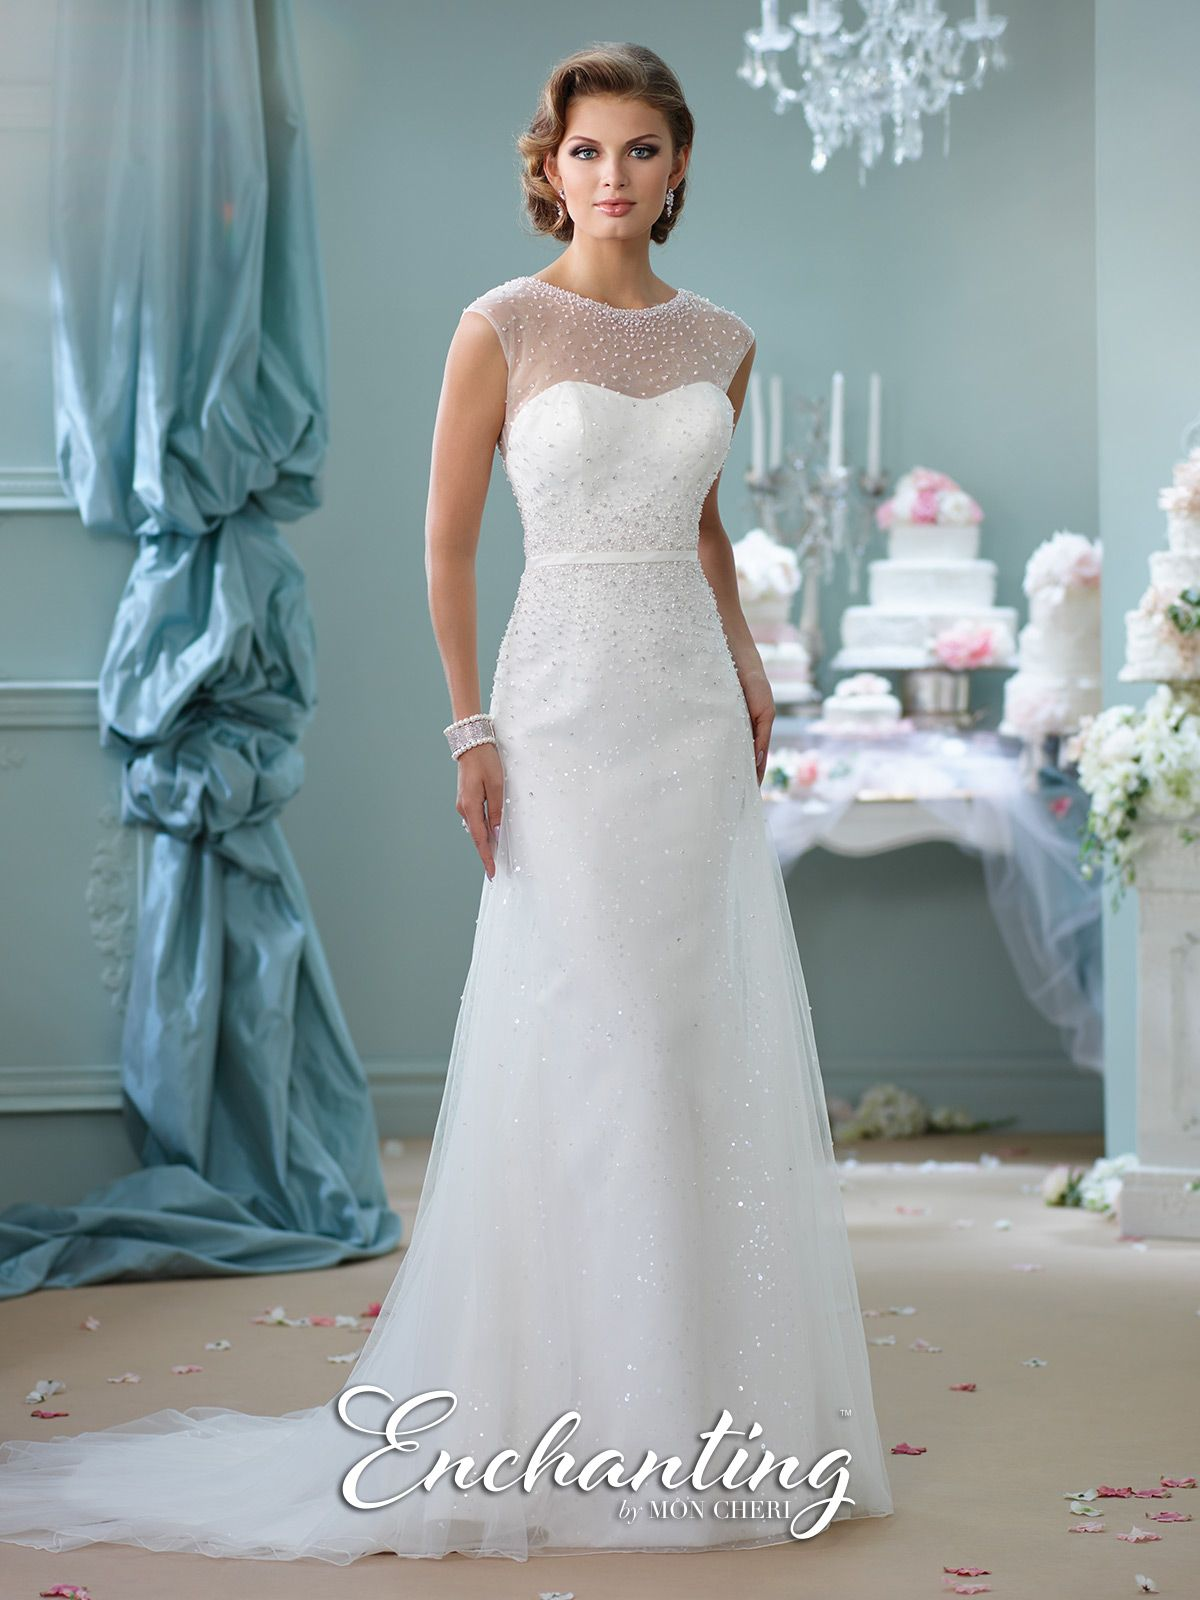 Modern Wedding Dresses 2018 by Mon Cheri | Ivory white, Gowns and ...